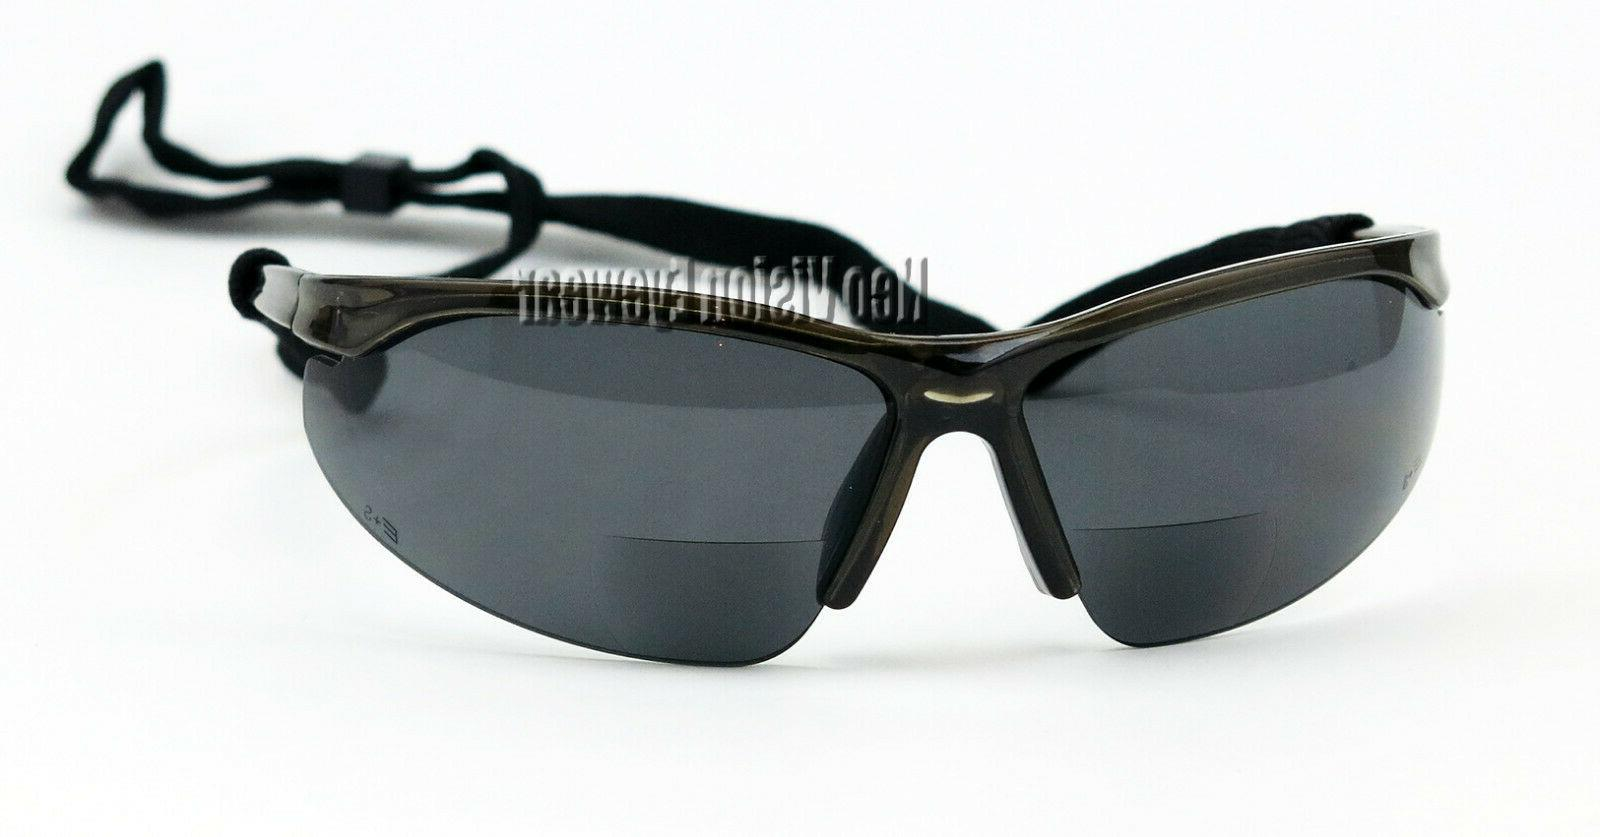 ERB Pinpoint Glasses